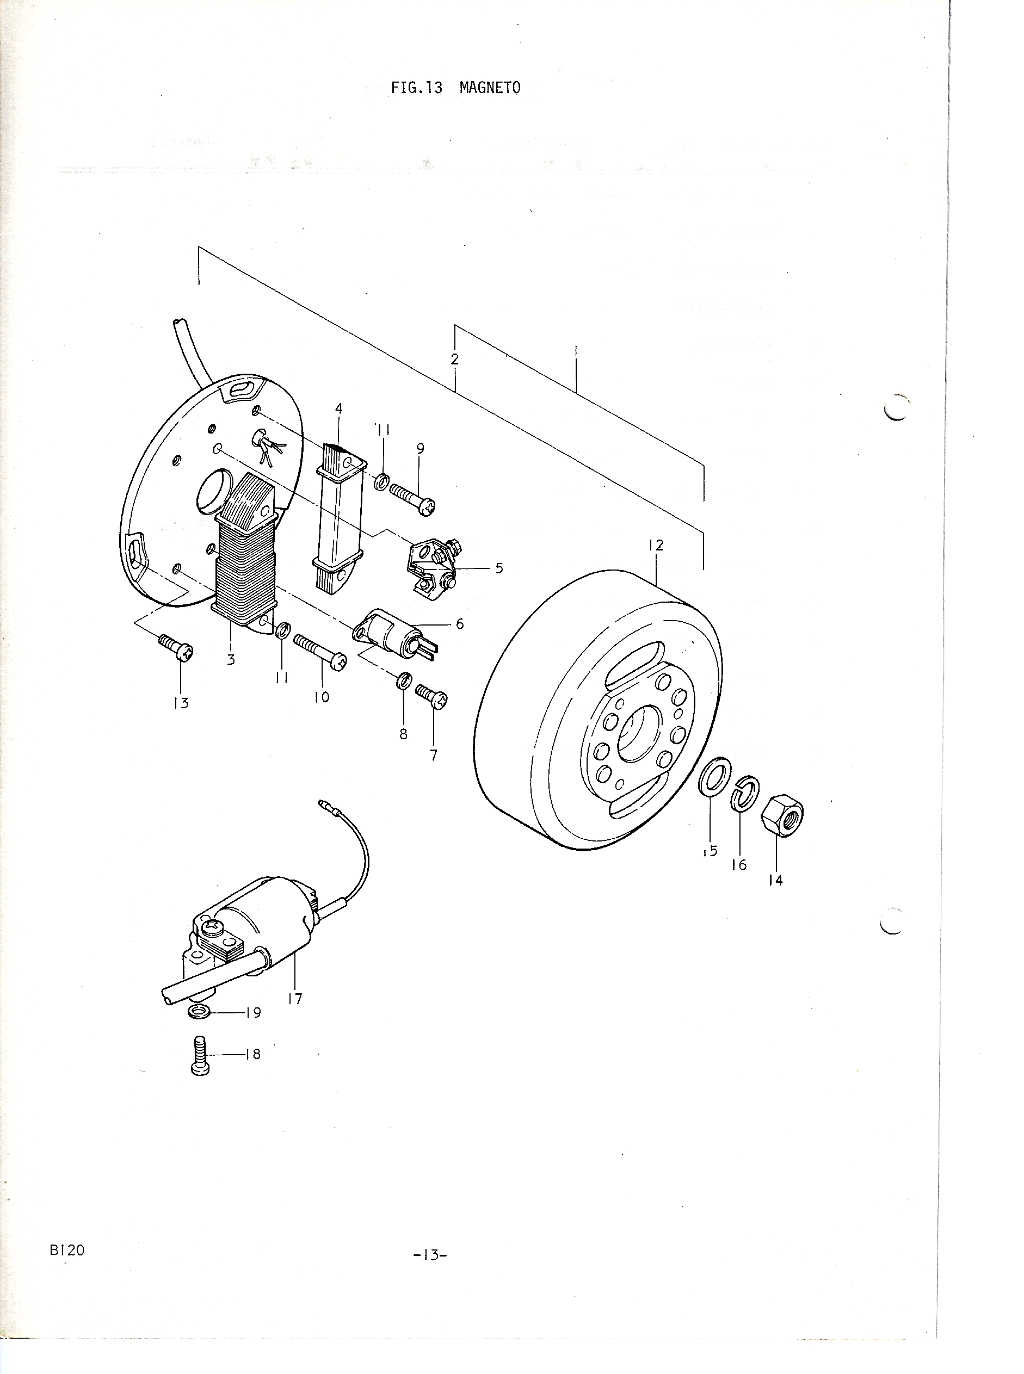 Suzuki B120 Parts Manual